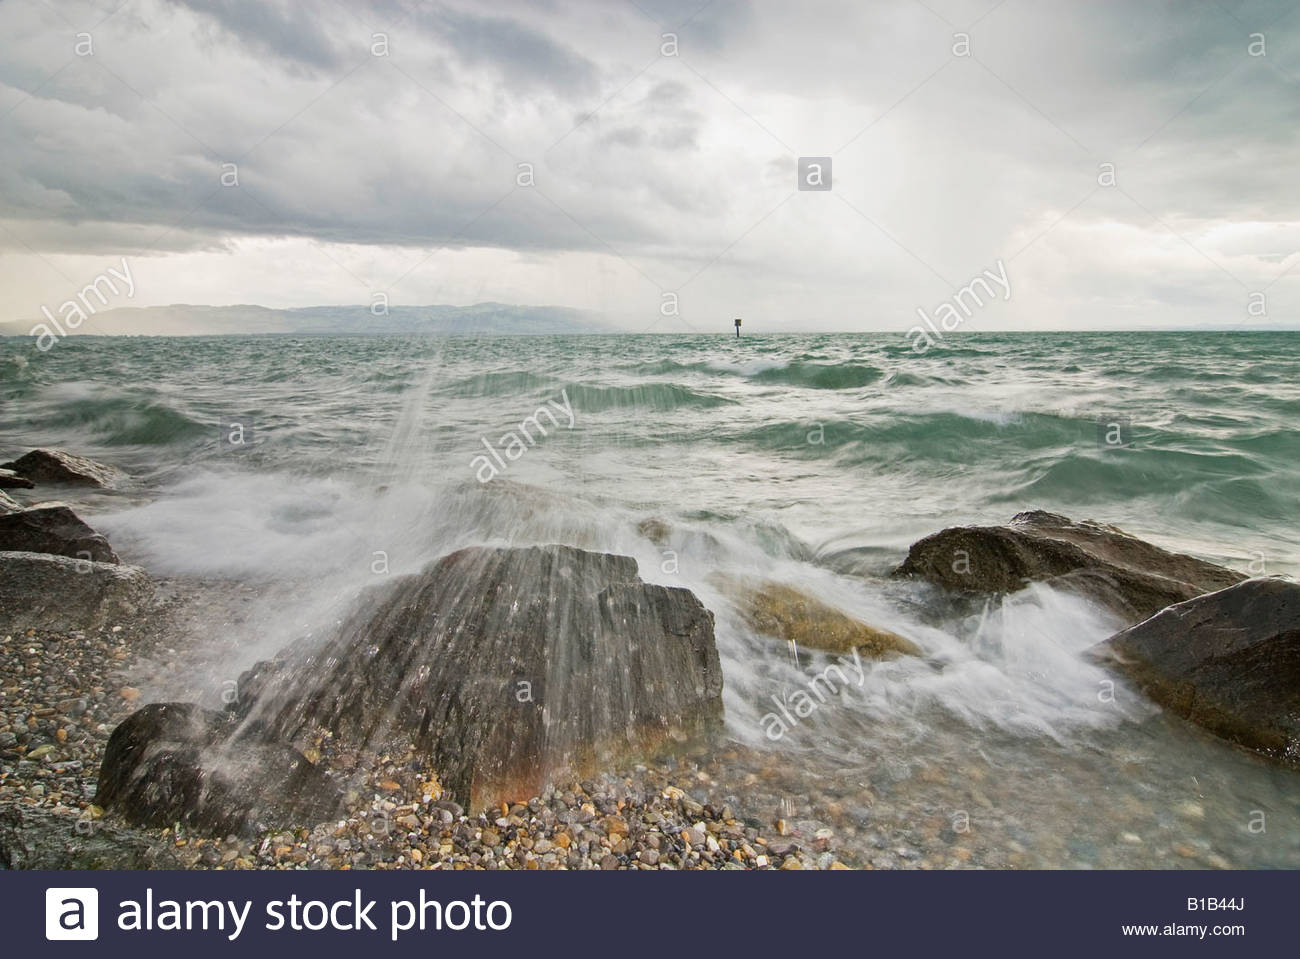 Germany, Bodensee, Nonnenhorn, breaking waves and cloudy sky - Stock Image